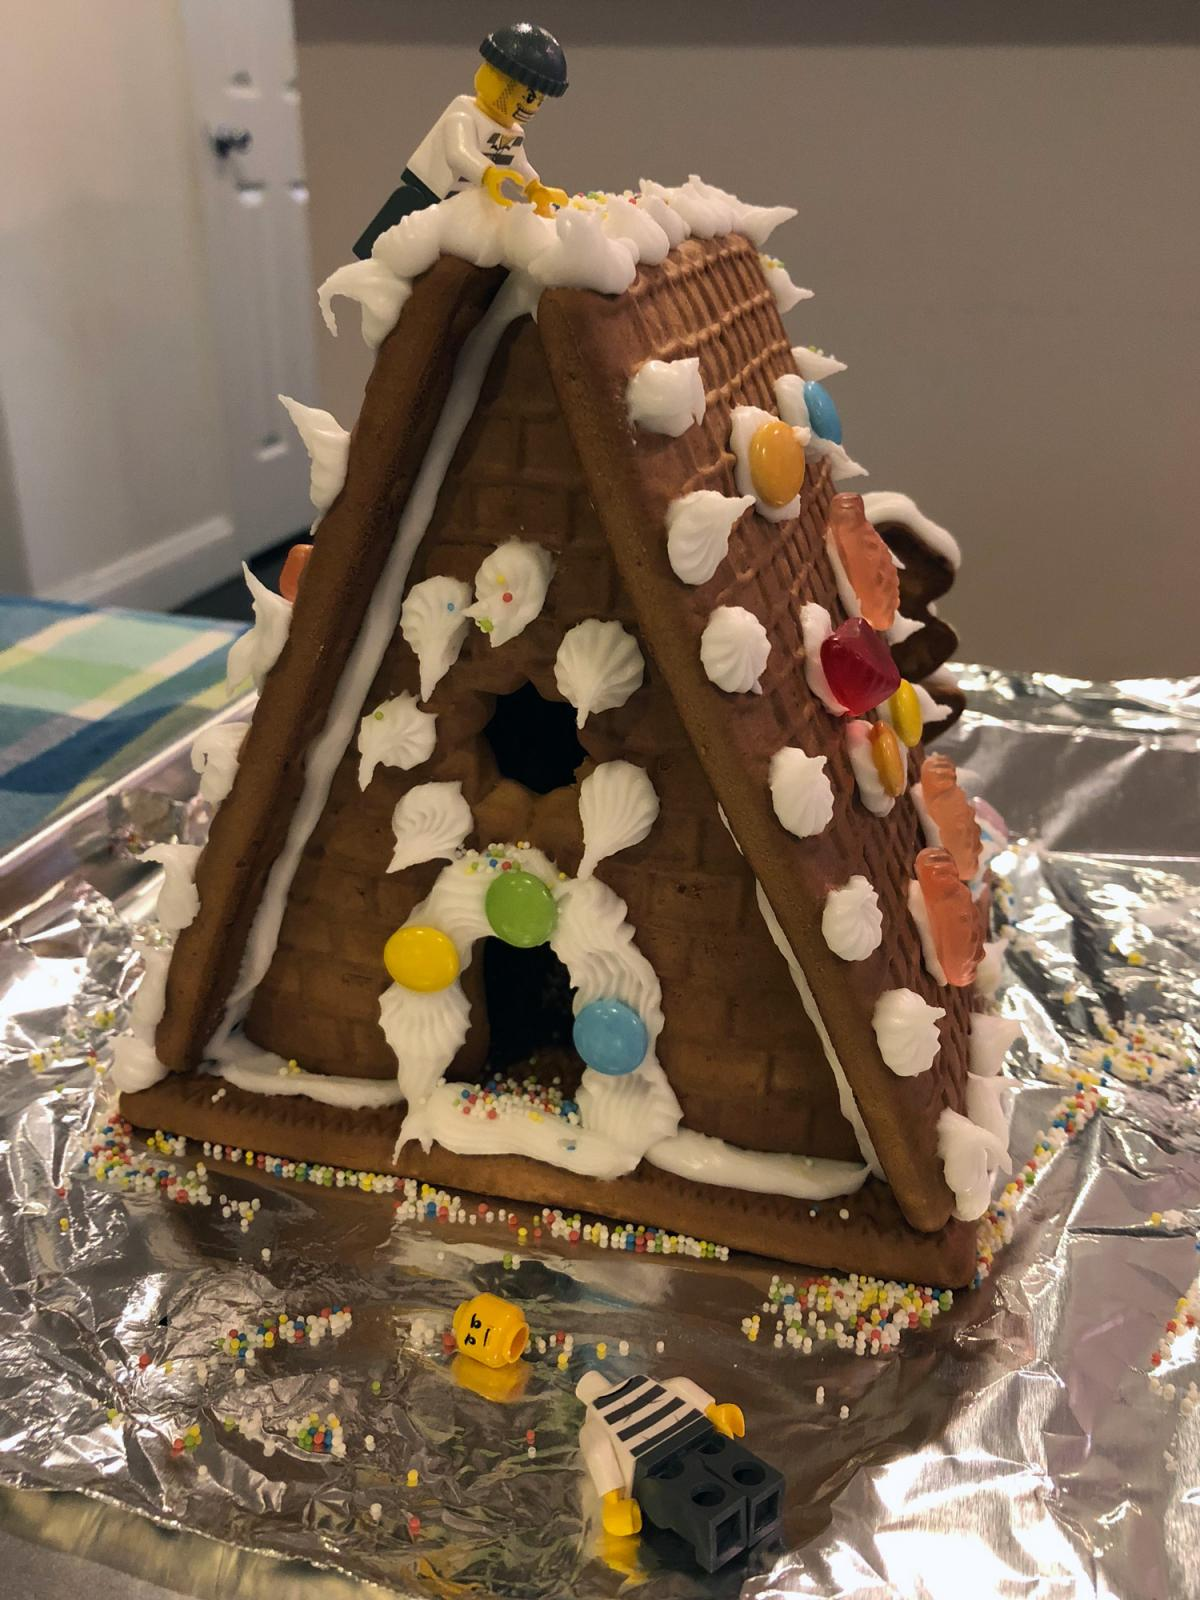 Gingerbread house with candy decorations and two LEGO figures.